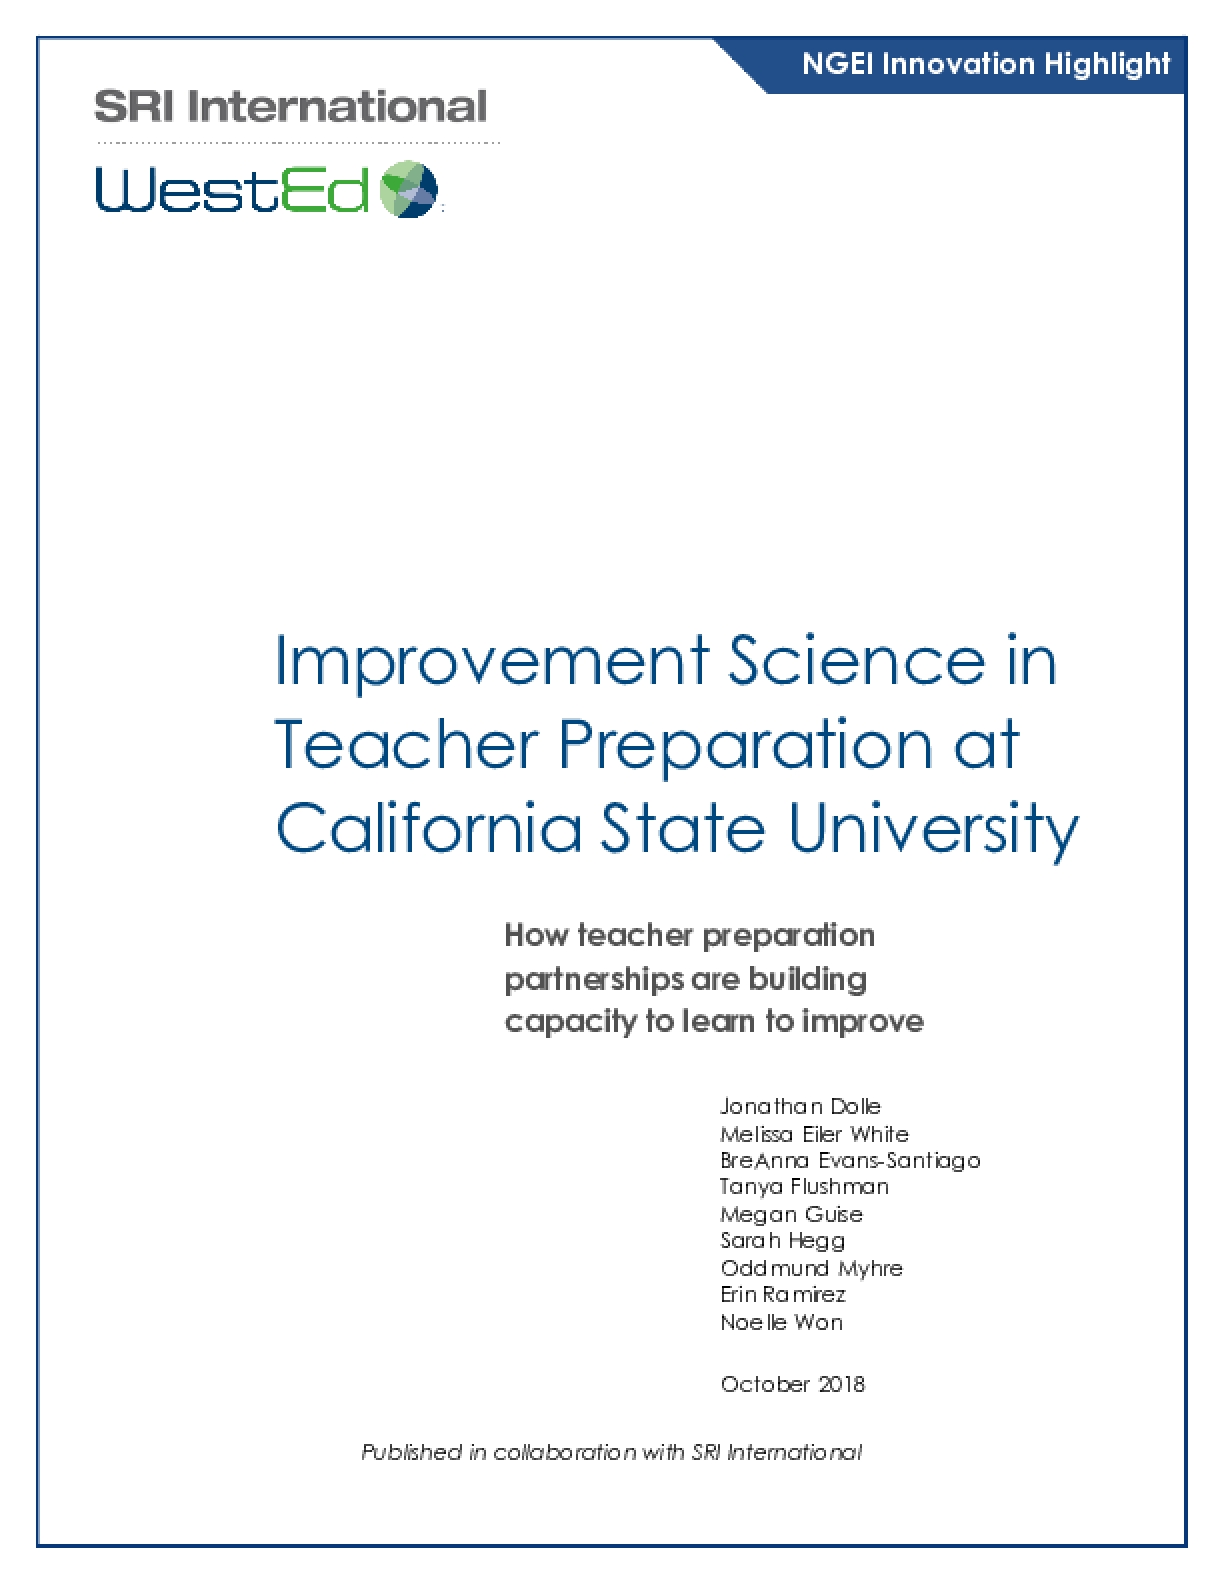 Improvement Science in Teacher Preparation at California State University: How teacher preparation partnerships are building capacity to learn to improve